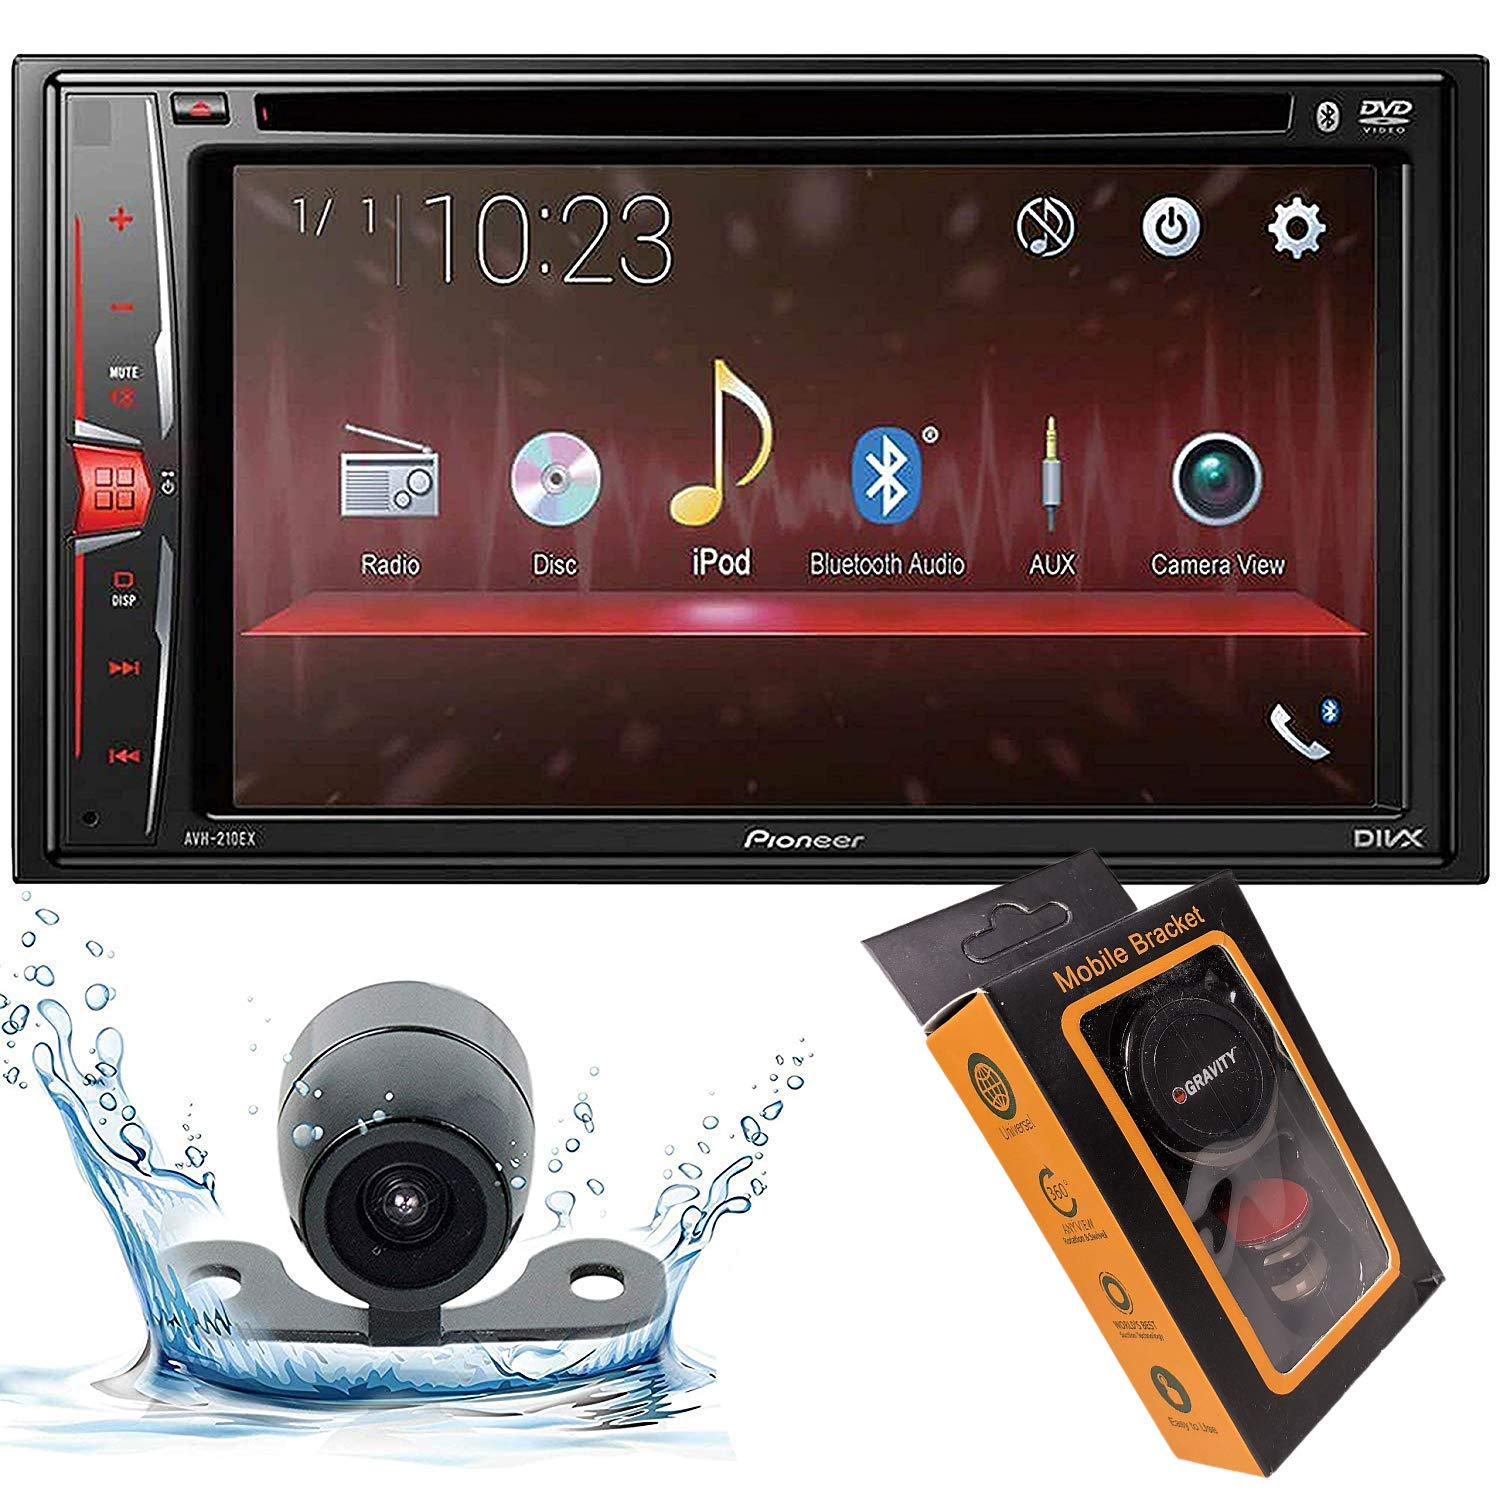 Pioneer AVH-210EX Double DIN Bluetooth in-Dash DVD/CD/AM/FM/Digital Media Car Stereo Receiver with HD Backup Camera and Magnet Phone Holder by Pioneer